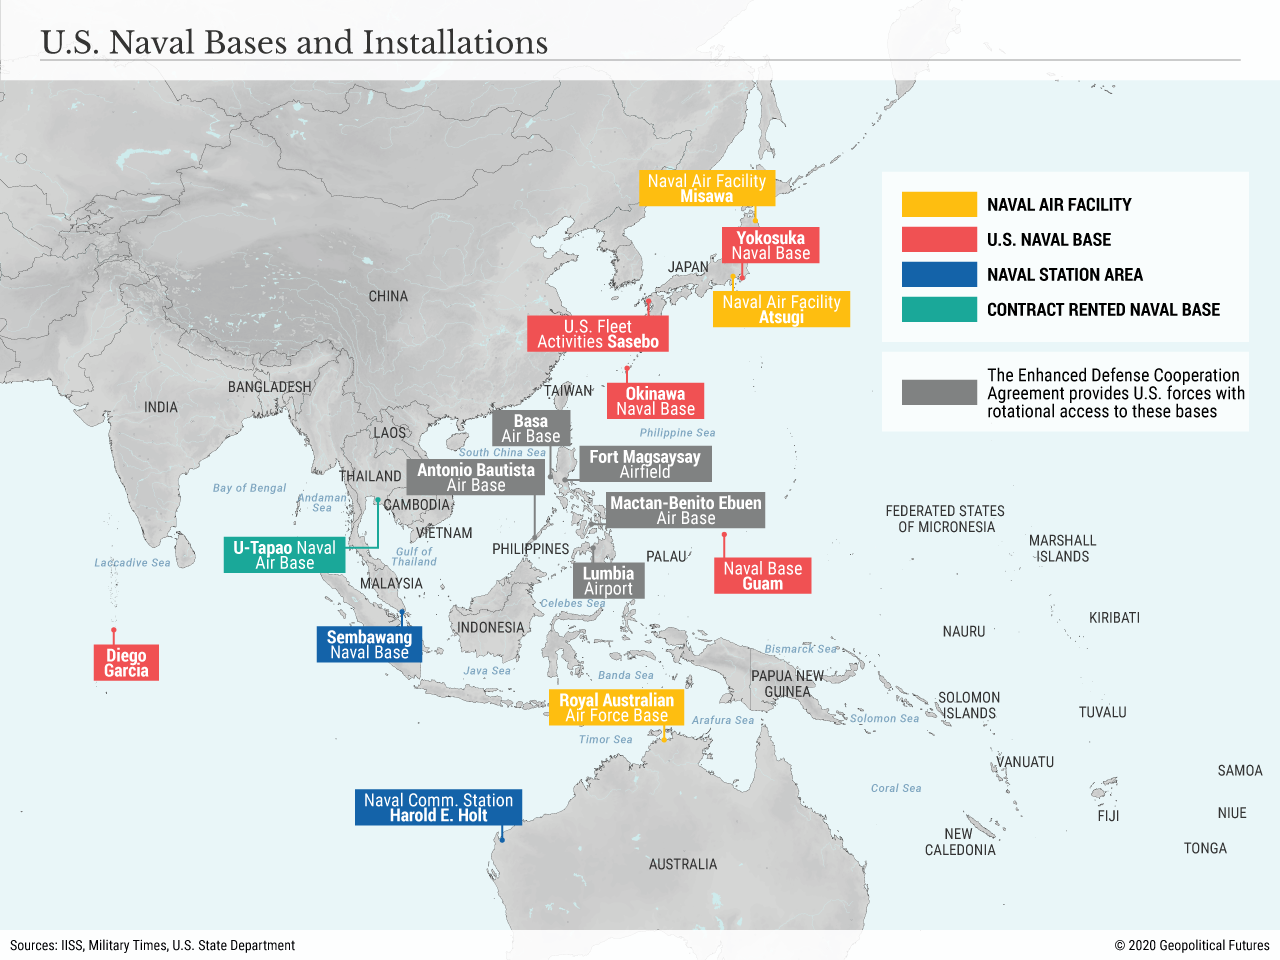 US Naval Bases and Installations